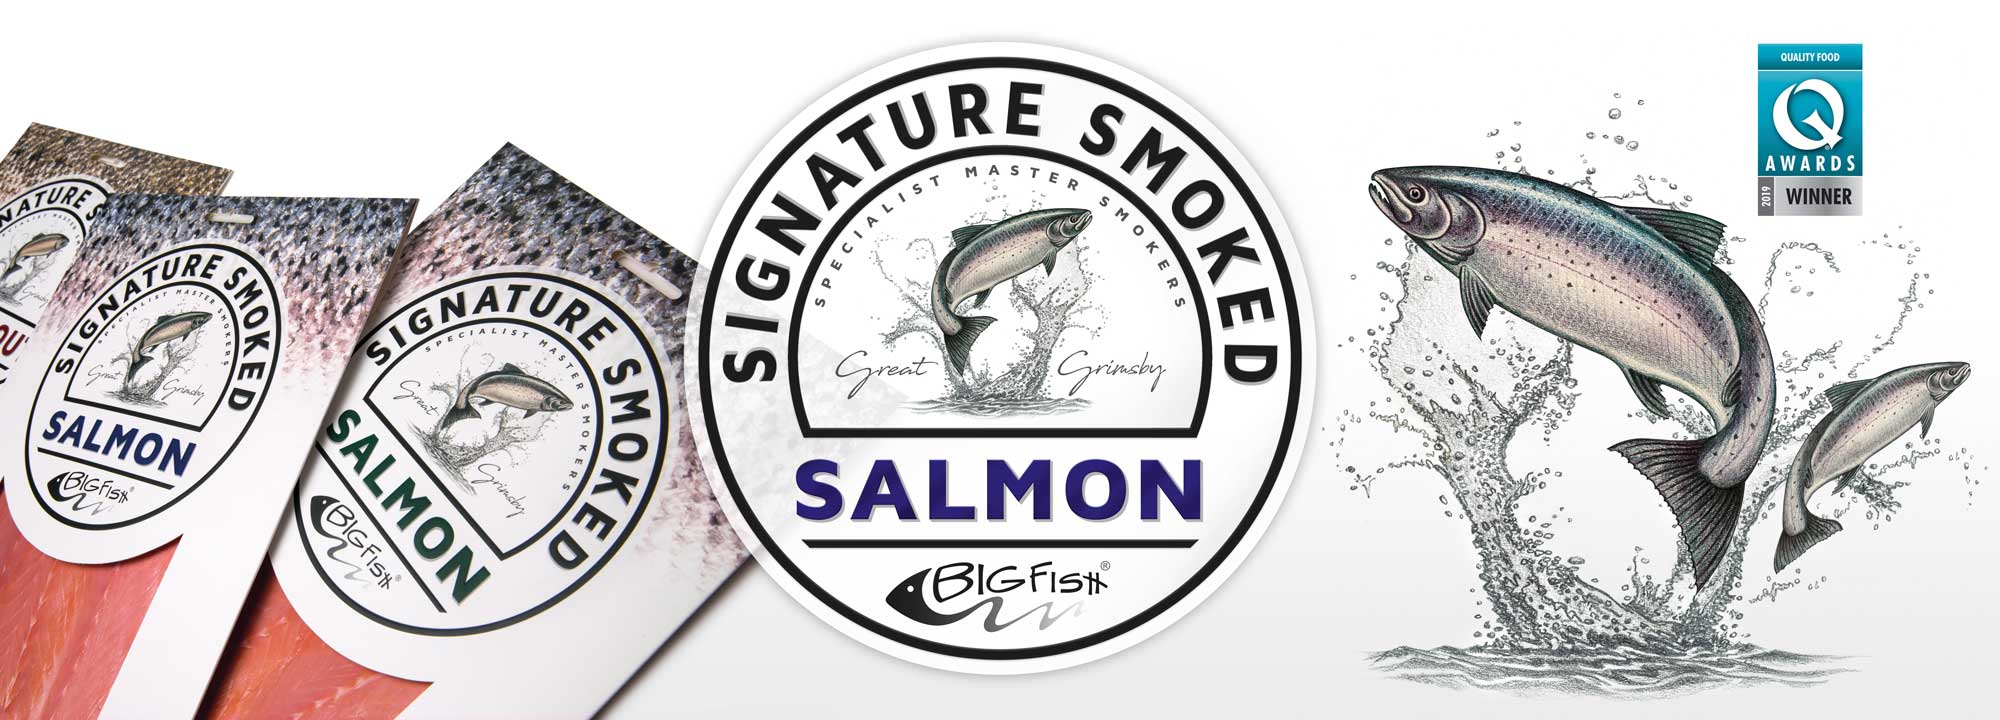 Scottish Smoked Salmon design